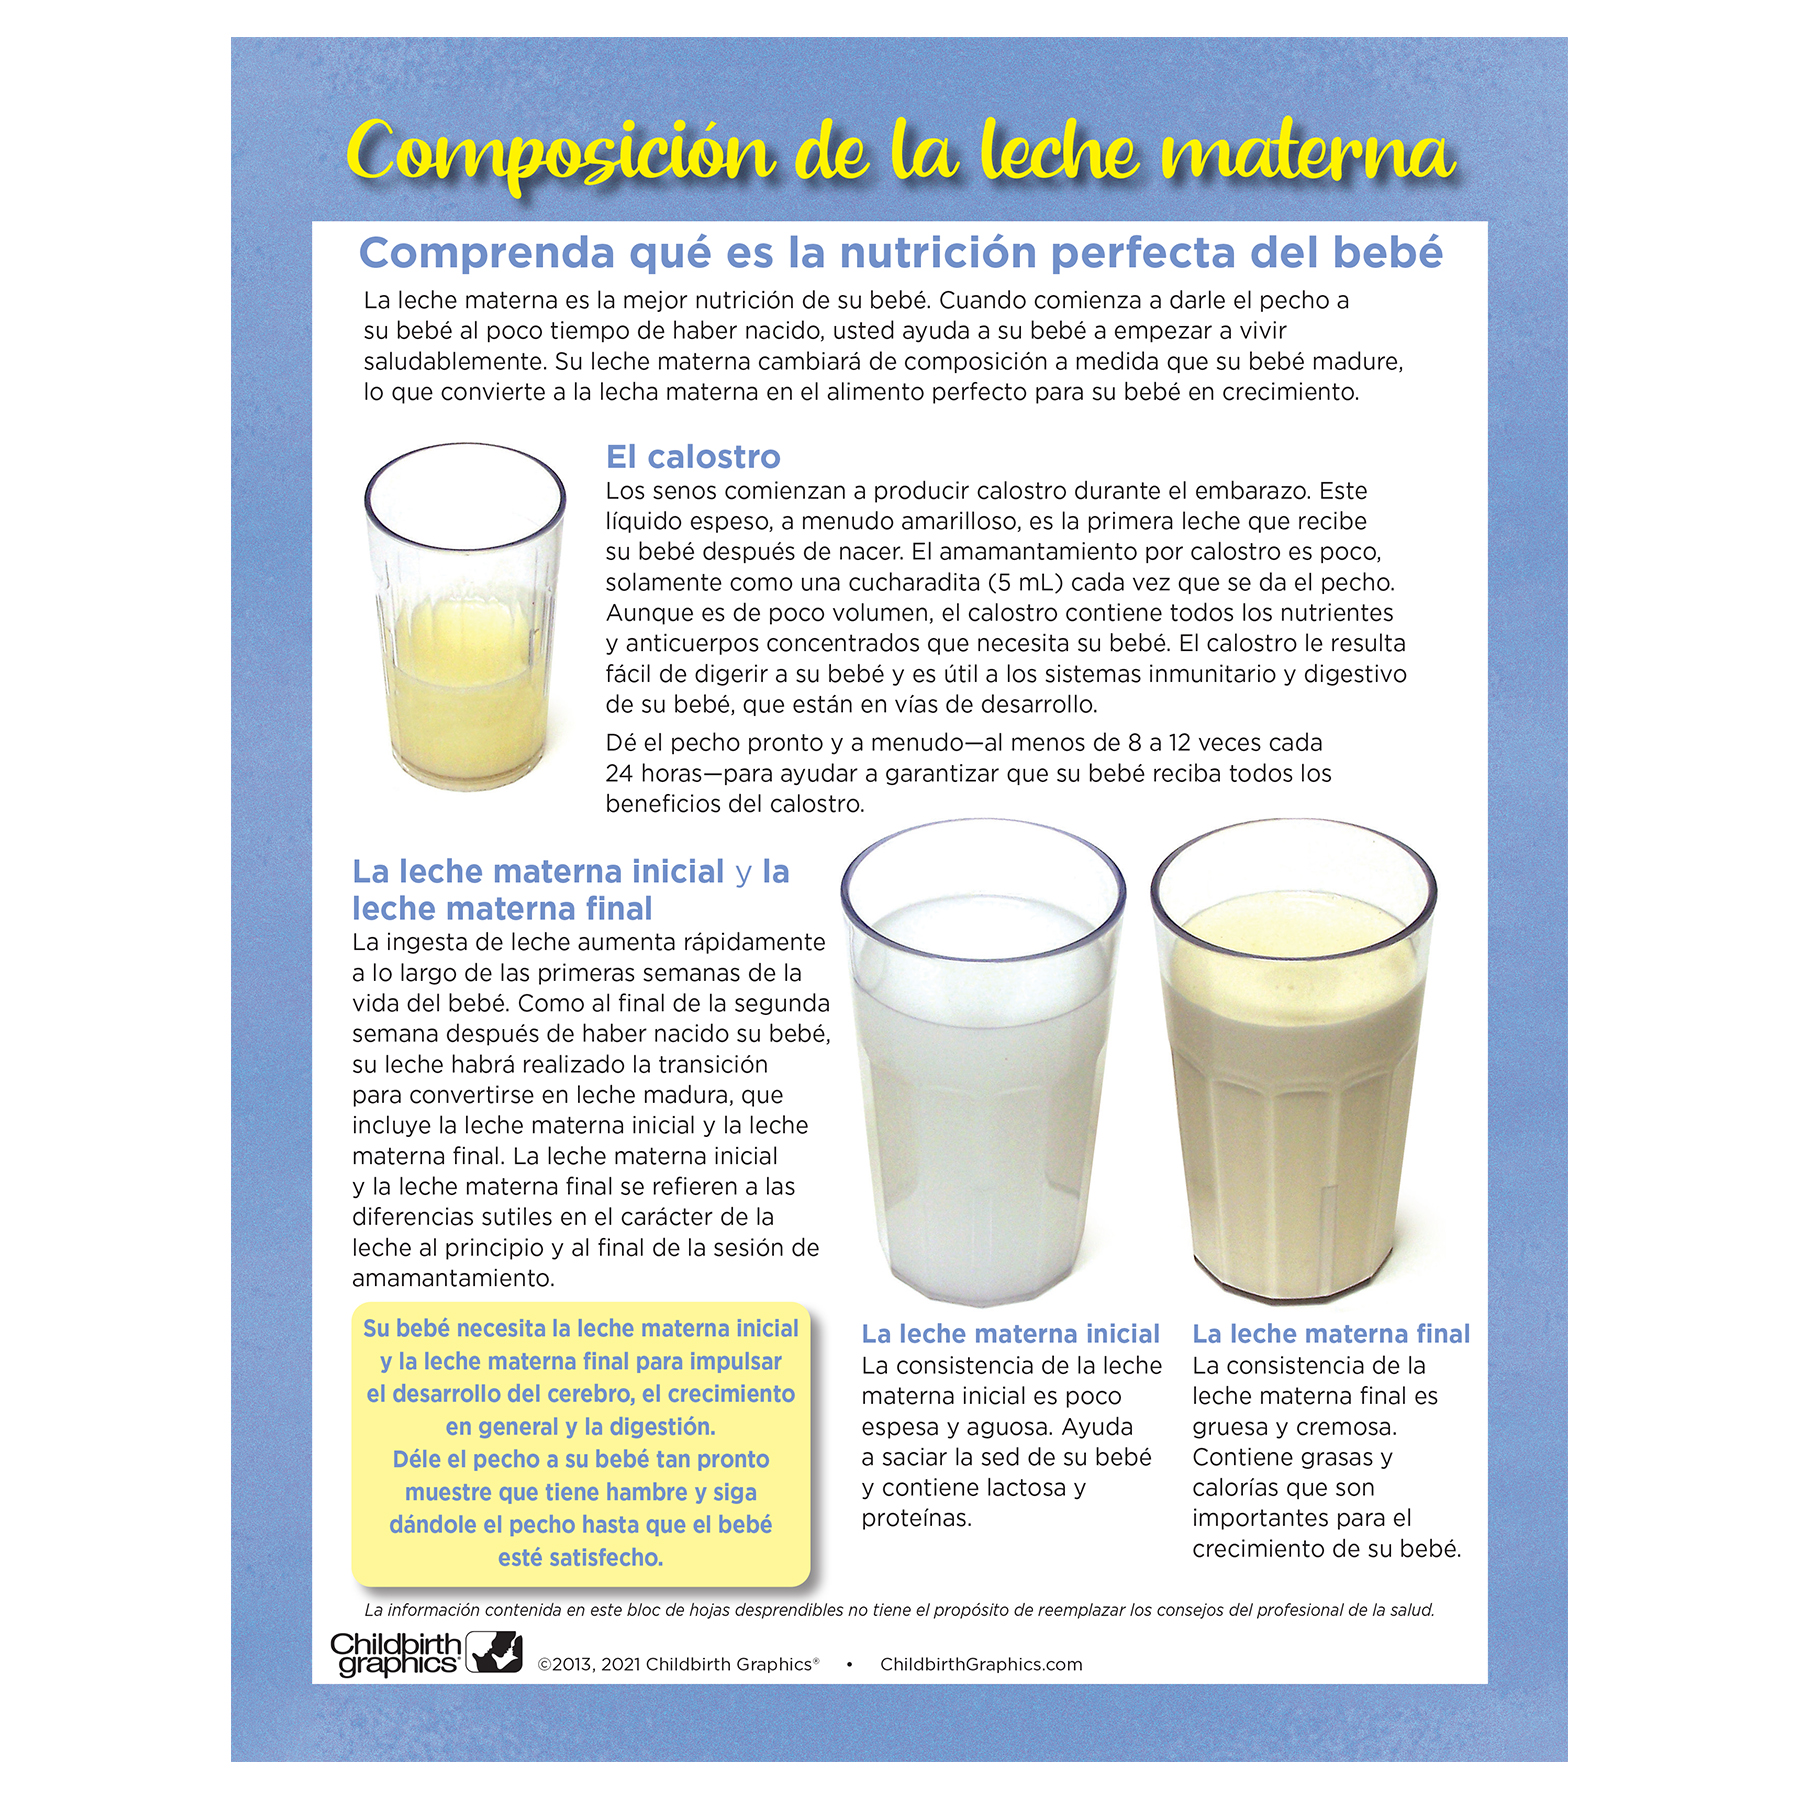 Breastmilk Composition full color tear pad Spanish side, explanation of 3 types of breastmilk, Childbirth Graphics, 52501